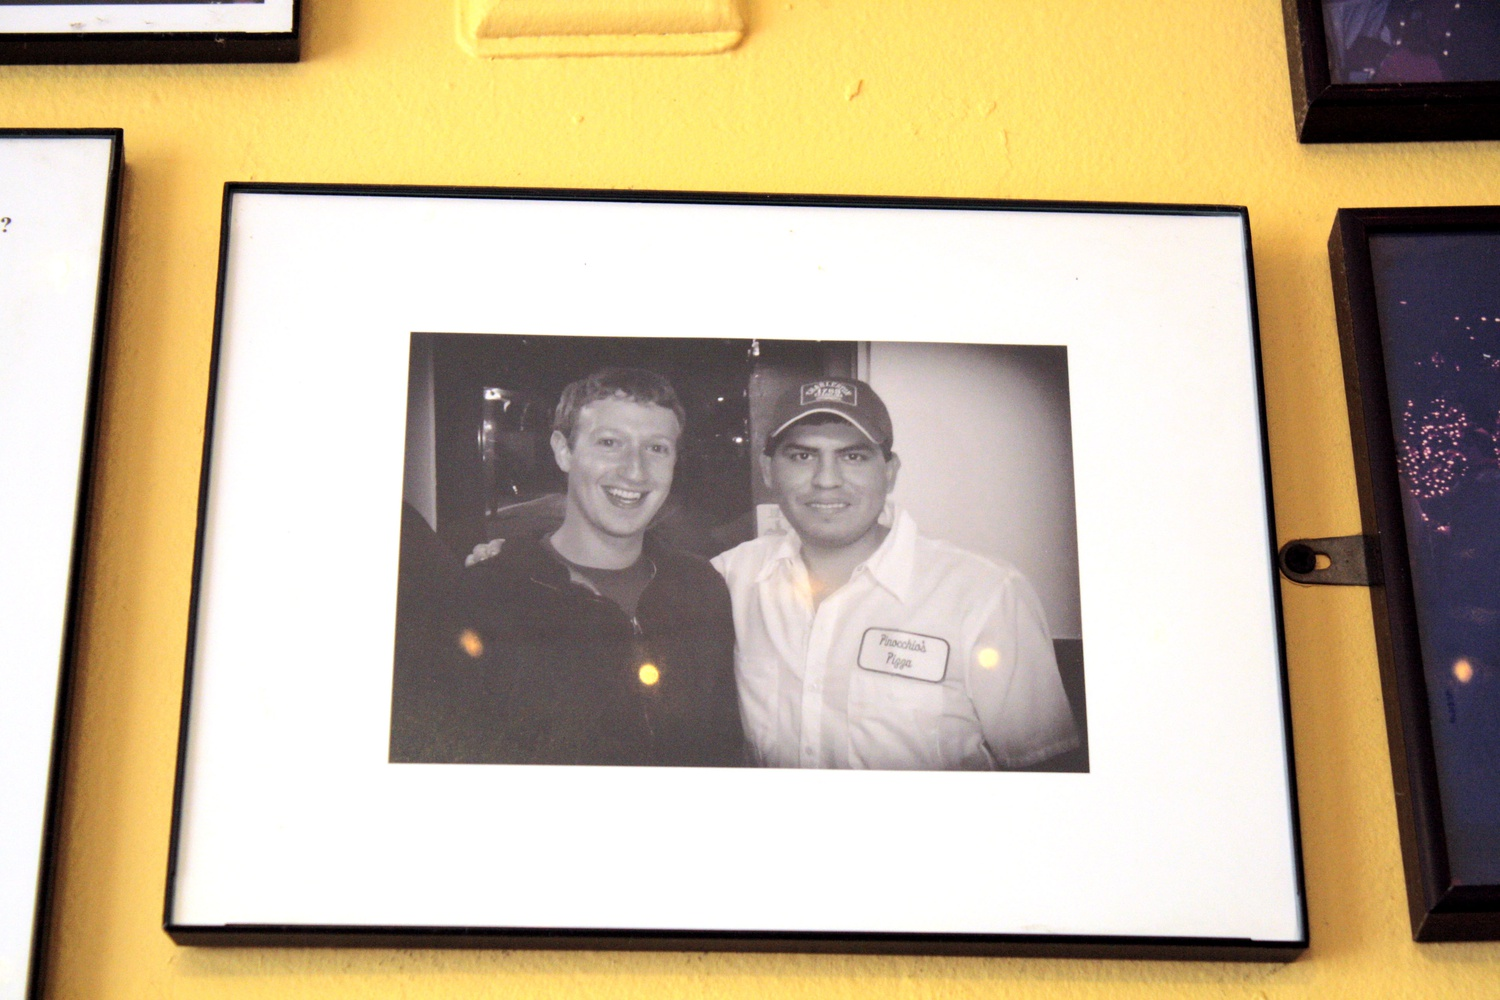 A picture of the Zucc lies on the wall of Noch's, gazing upon Harvard students as they gobble pizza